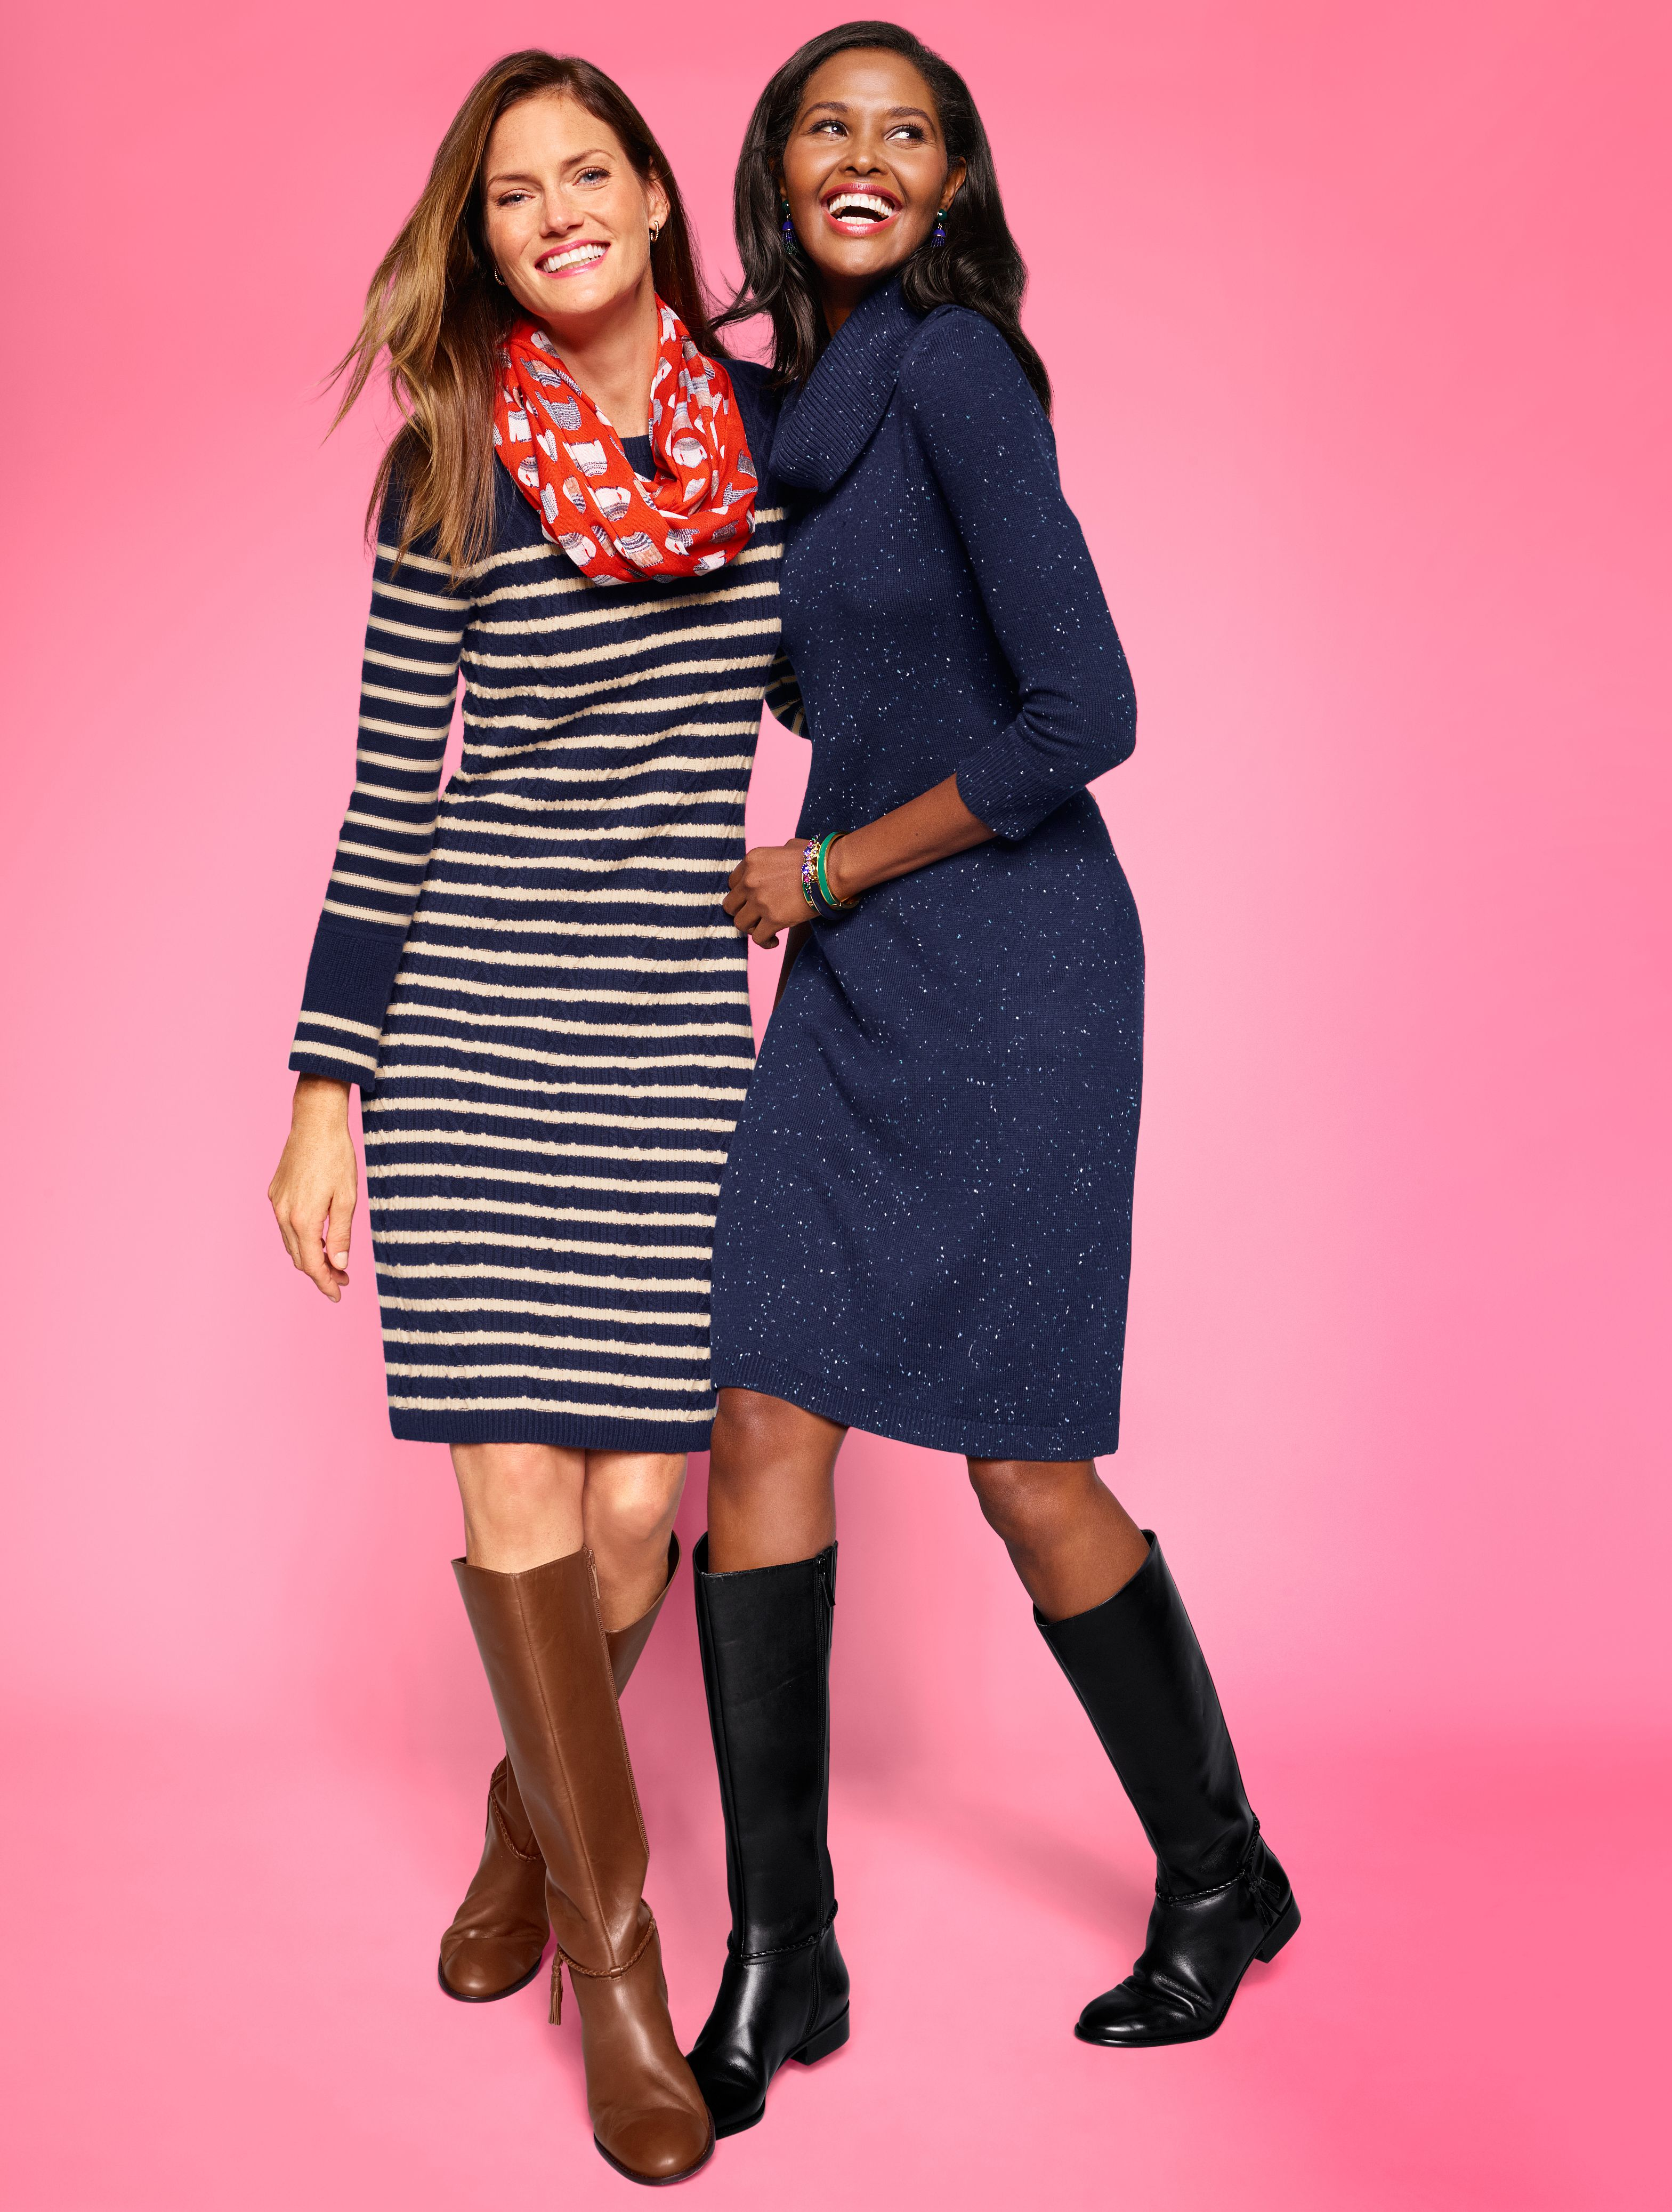 Tis The Season Of The Sweater Dress From Stripes To Cowlnecks It S All In The Details This Season Pair T Knit Shift Dress Sweater Dress Boots Sweater Dress [ 4149 x 3137 Pixel ]